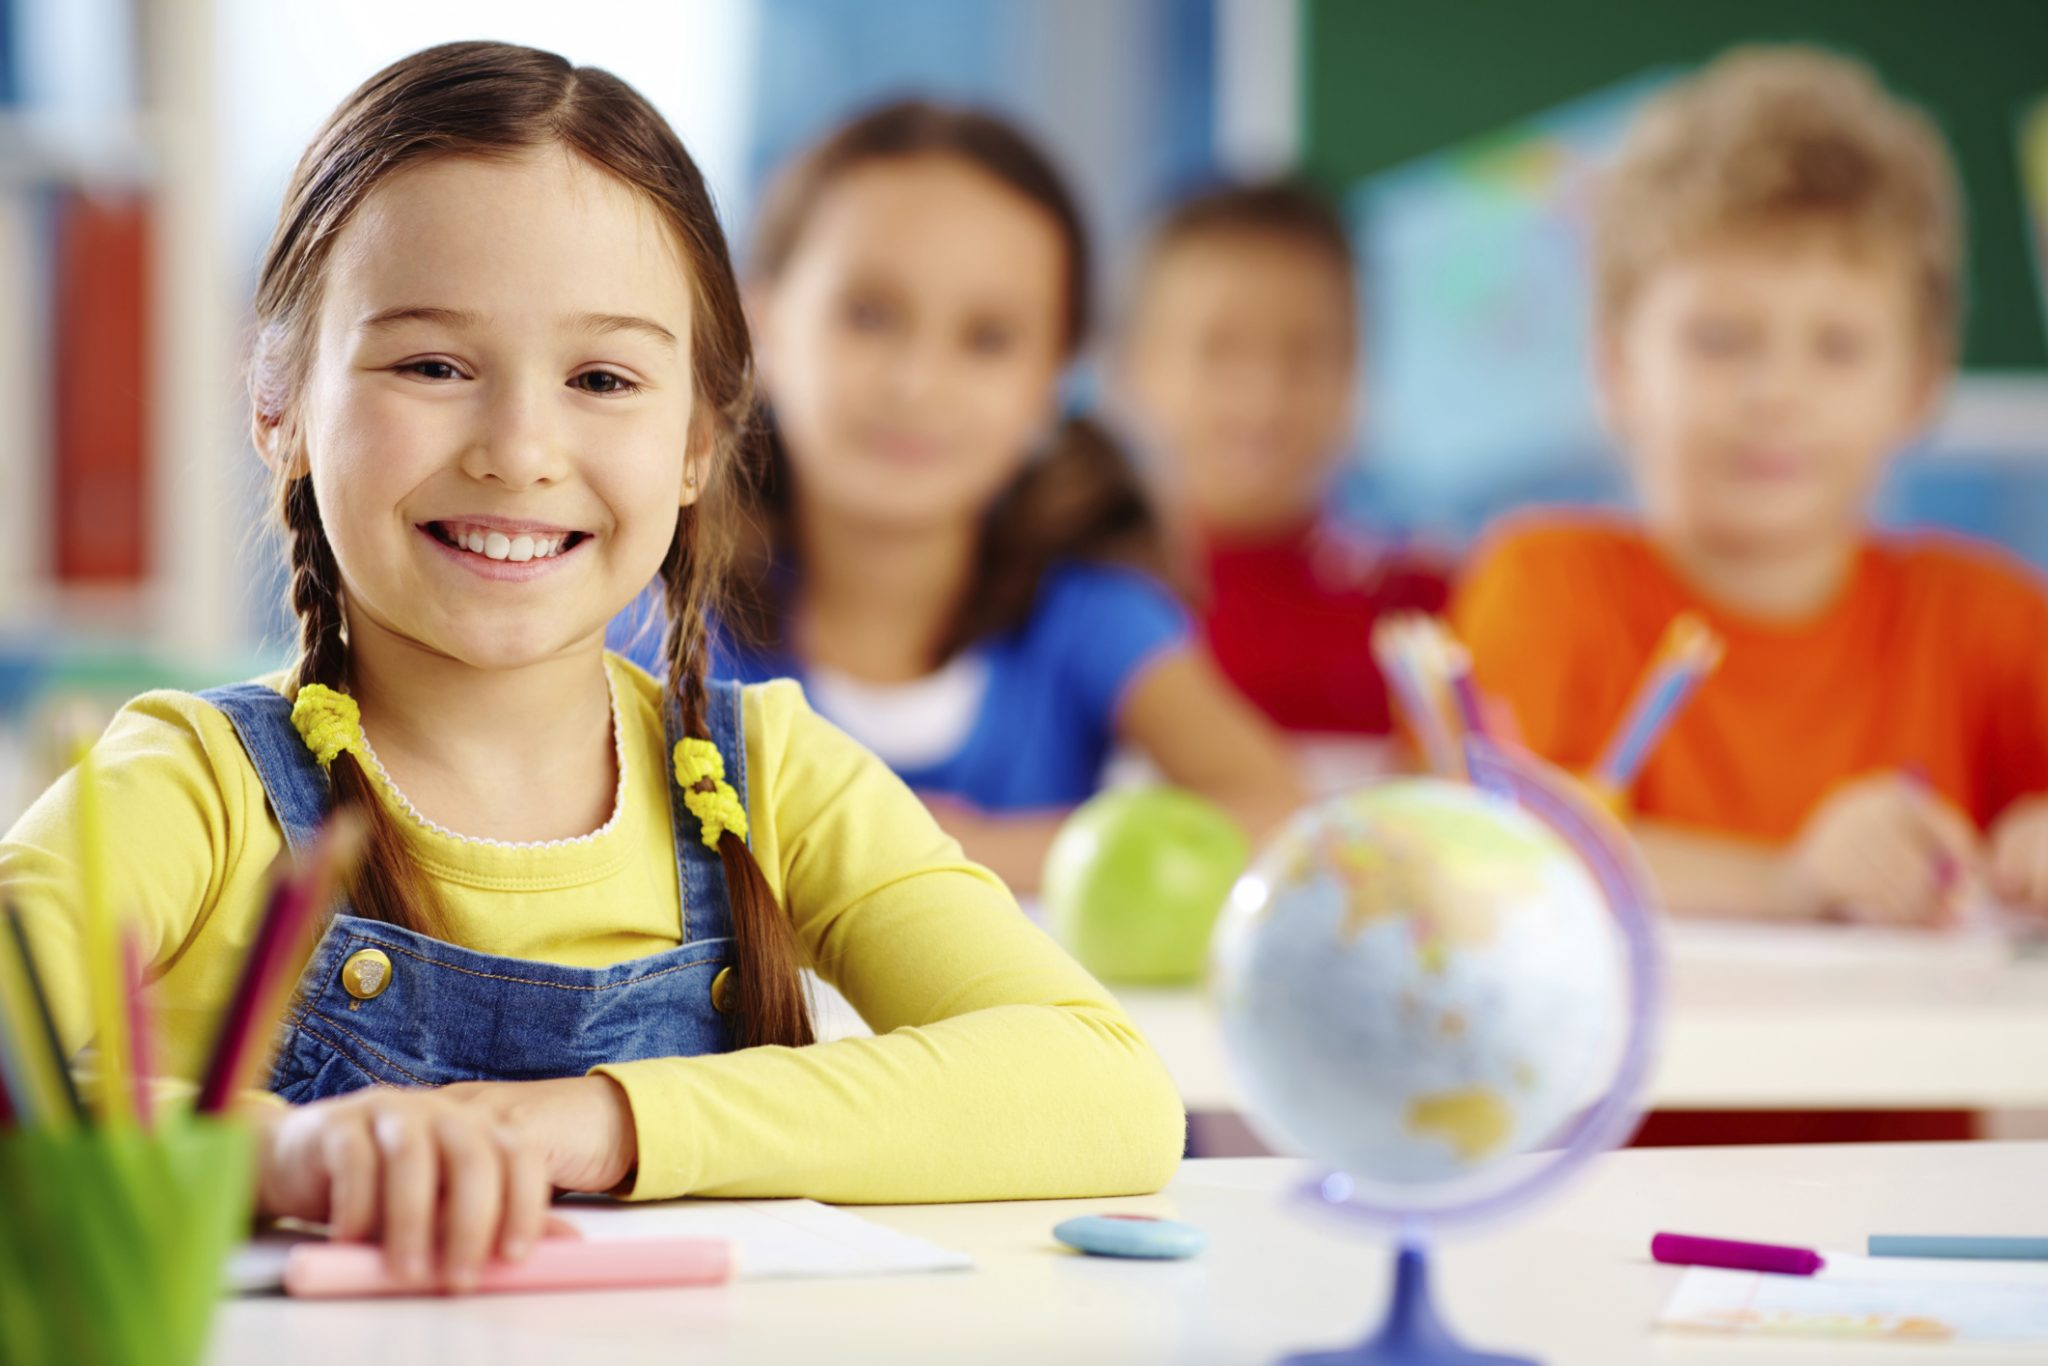 Three ways technology can reduce barriers to technology adoption for K-12